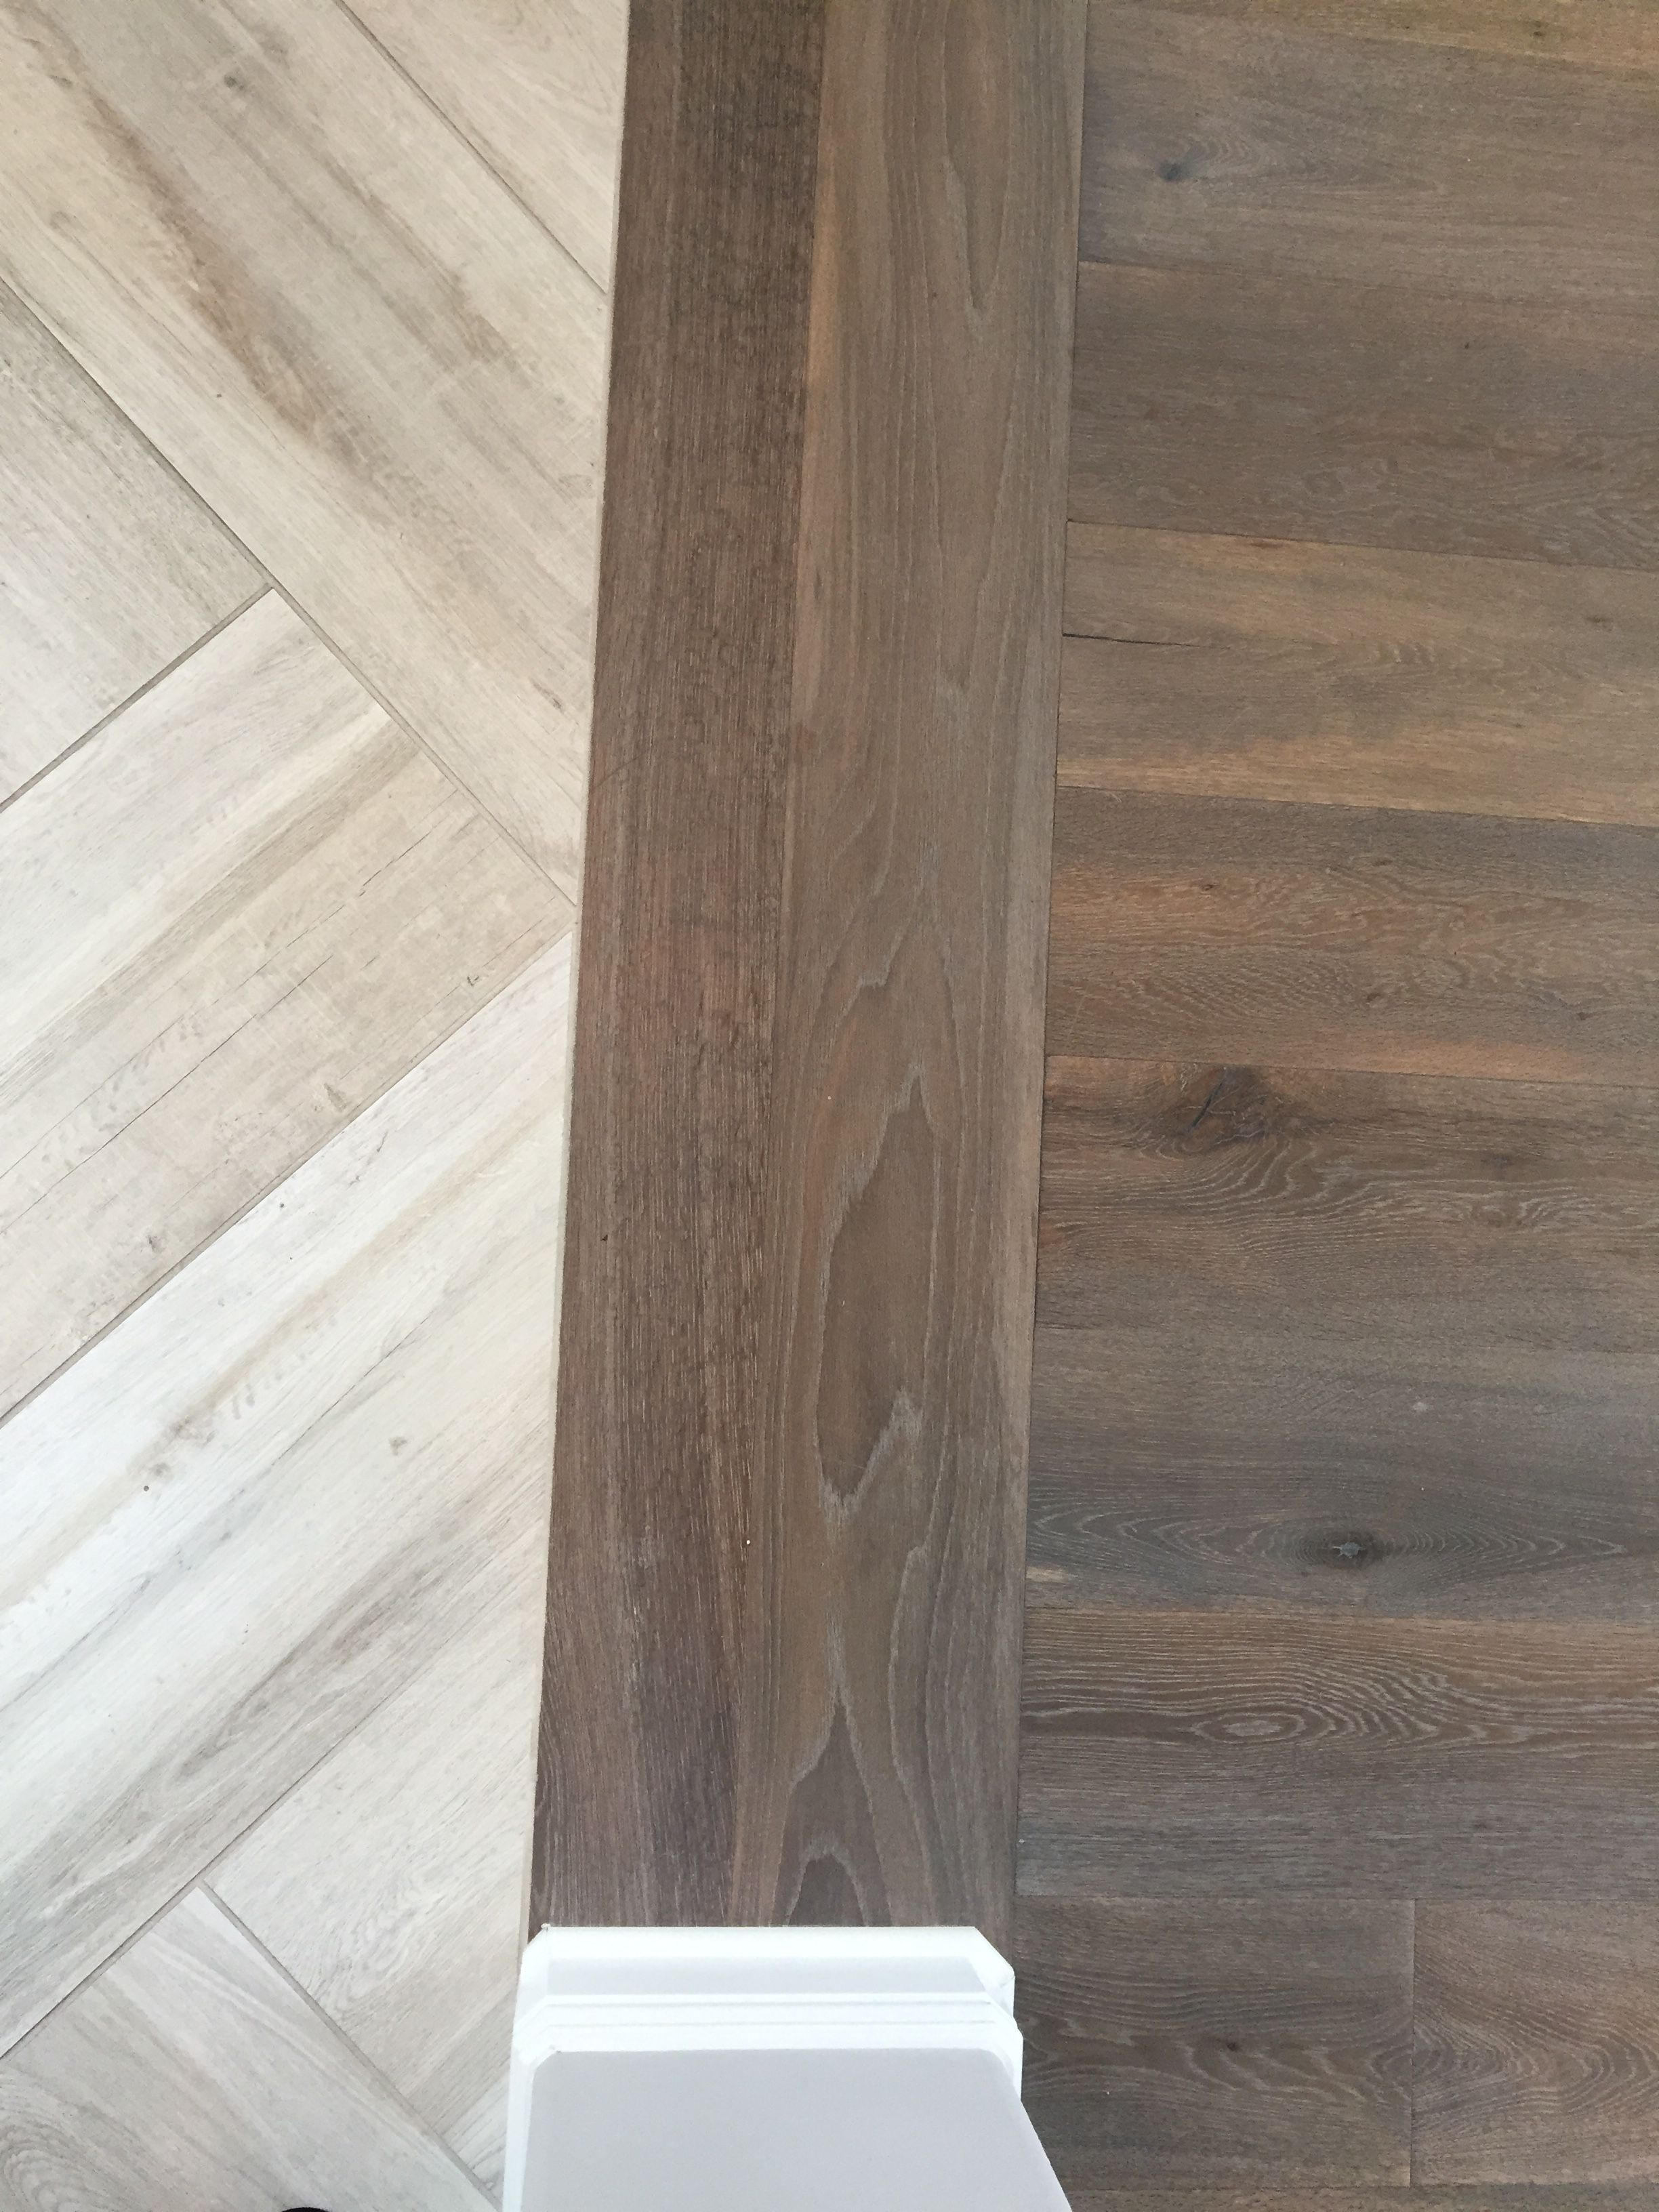 Floor transition laminate to herringbone tile pattern for Tile and hardwood floor